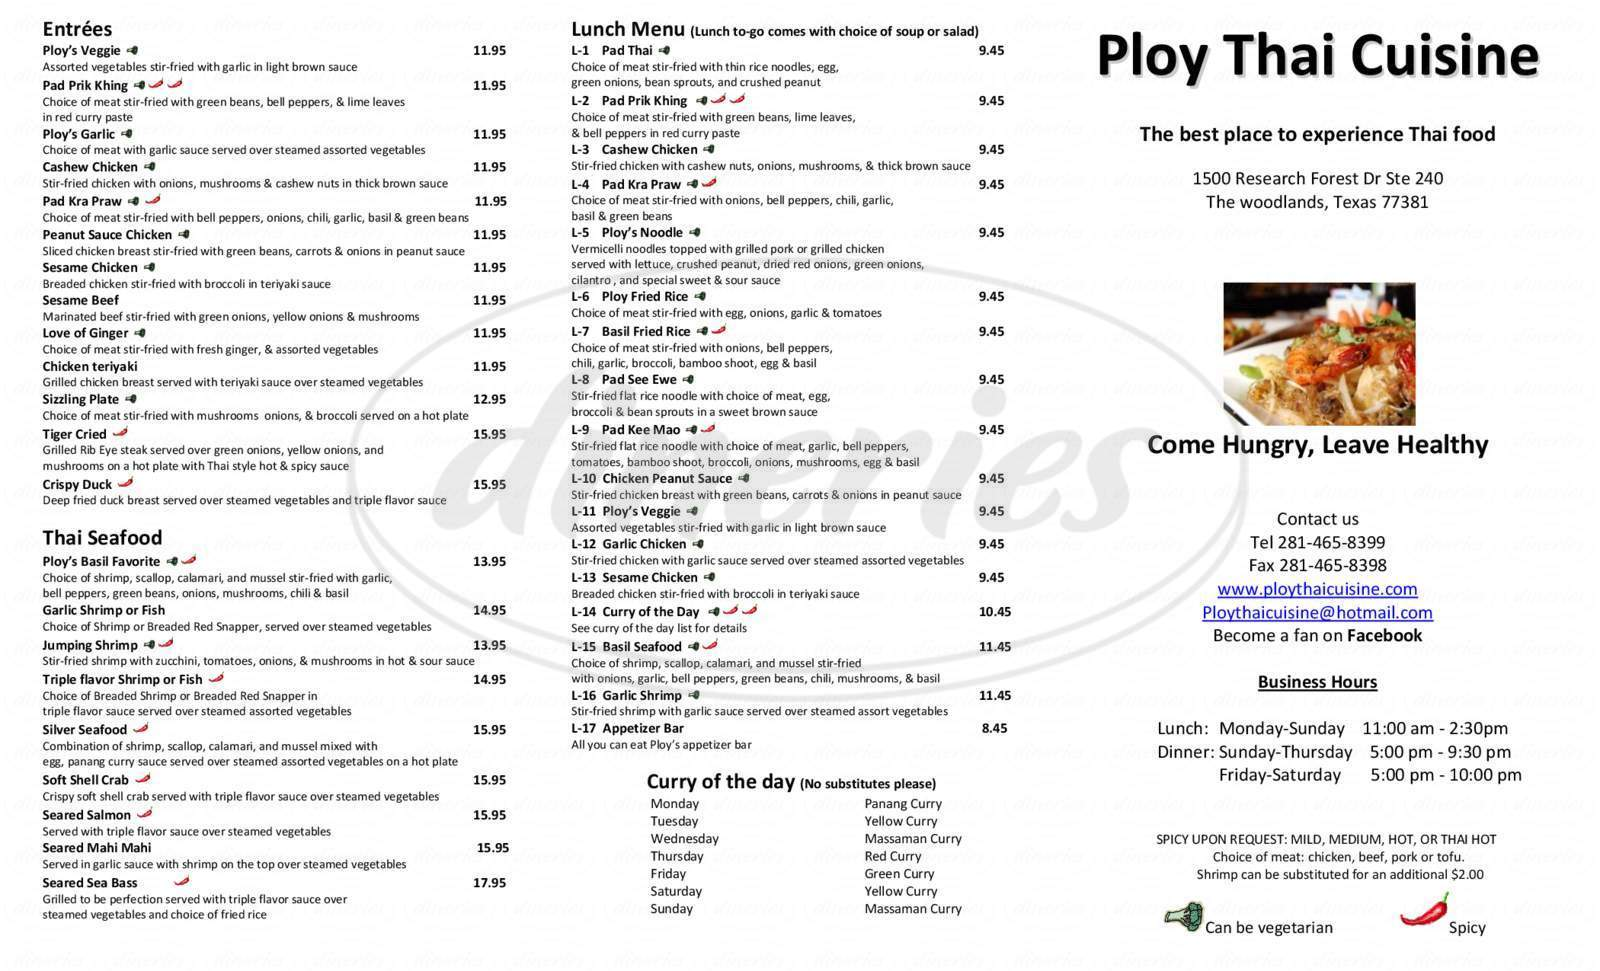 menu for Ploy Thai Cuisine